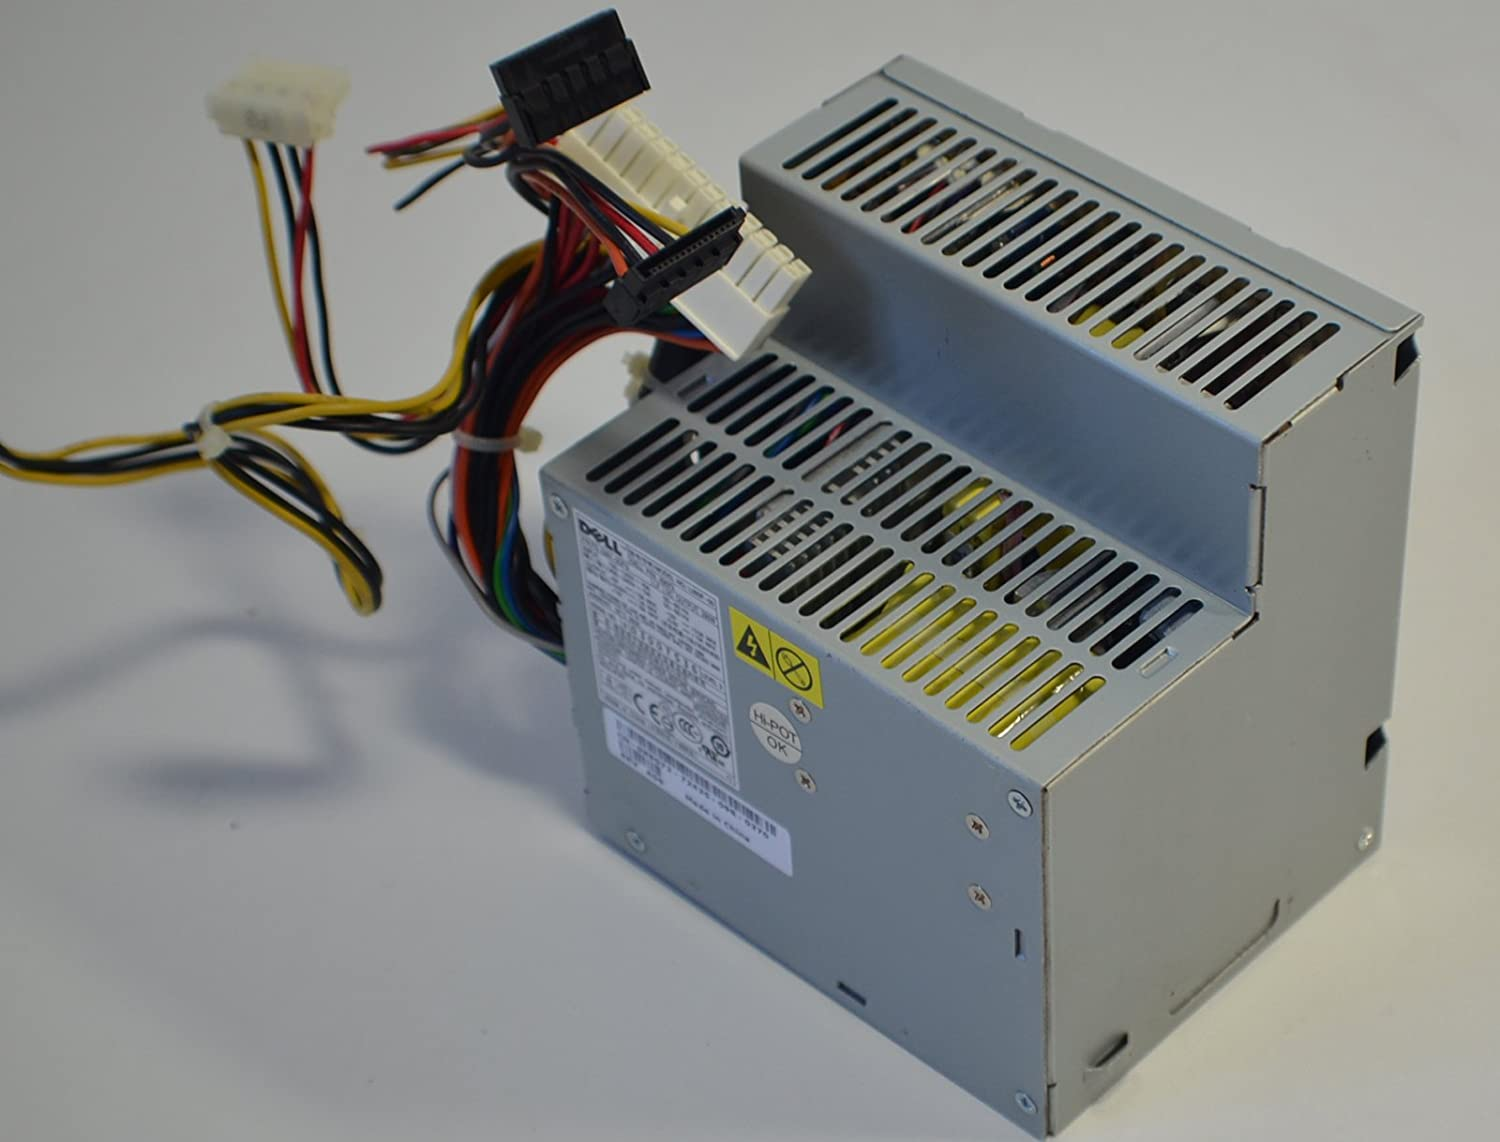 New Dell Power Supply PSU Switching Unit Optiplex GX520 GX620 GX280 210L 320 330 740 745 755 Dimension C521 3100C 280W JK930 MH595 MH596 NC912 NH429 P9550 RT490 U9087 X9072 AA24100L D280P-00 H280P-00 L280P-01 H280P-01 L280P-0 L220P-00 AA24120L N220P-00 PS